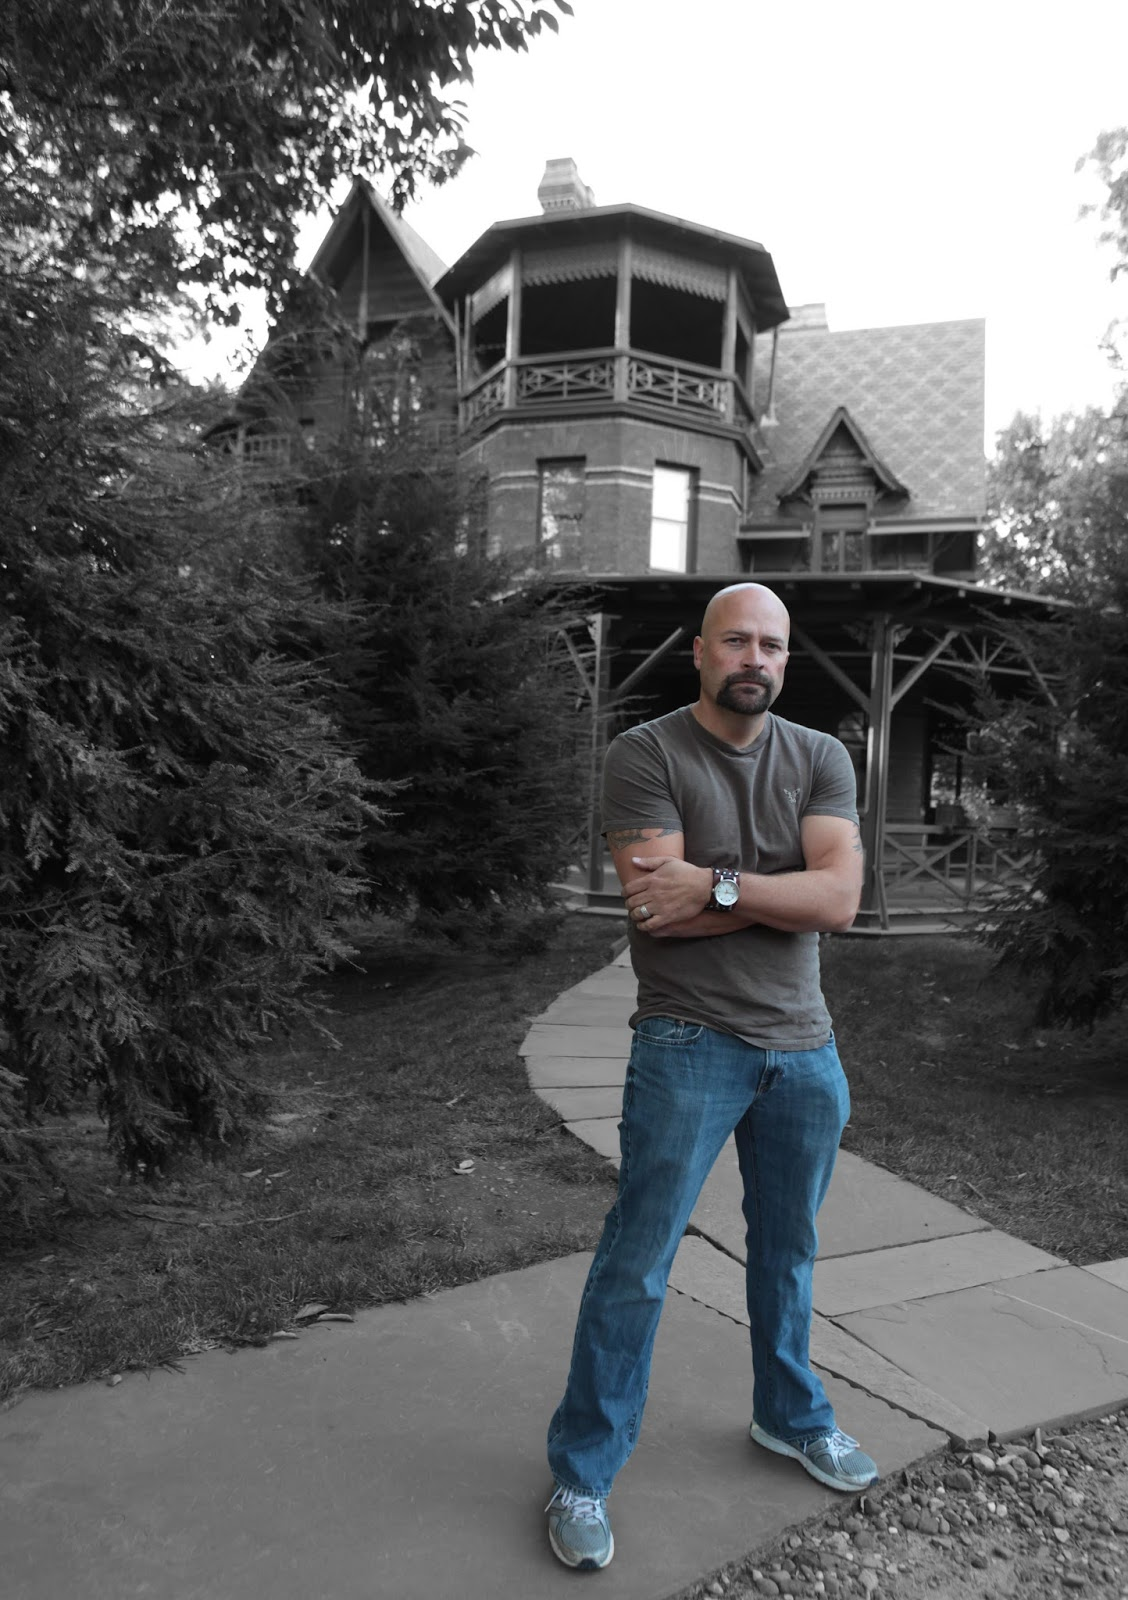 Haunted Magazine: YOU CAN TAKE THE MAN OUT OF GHOST HUNTERS